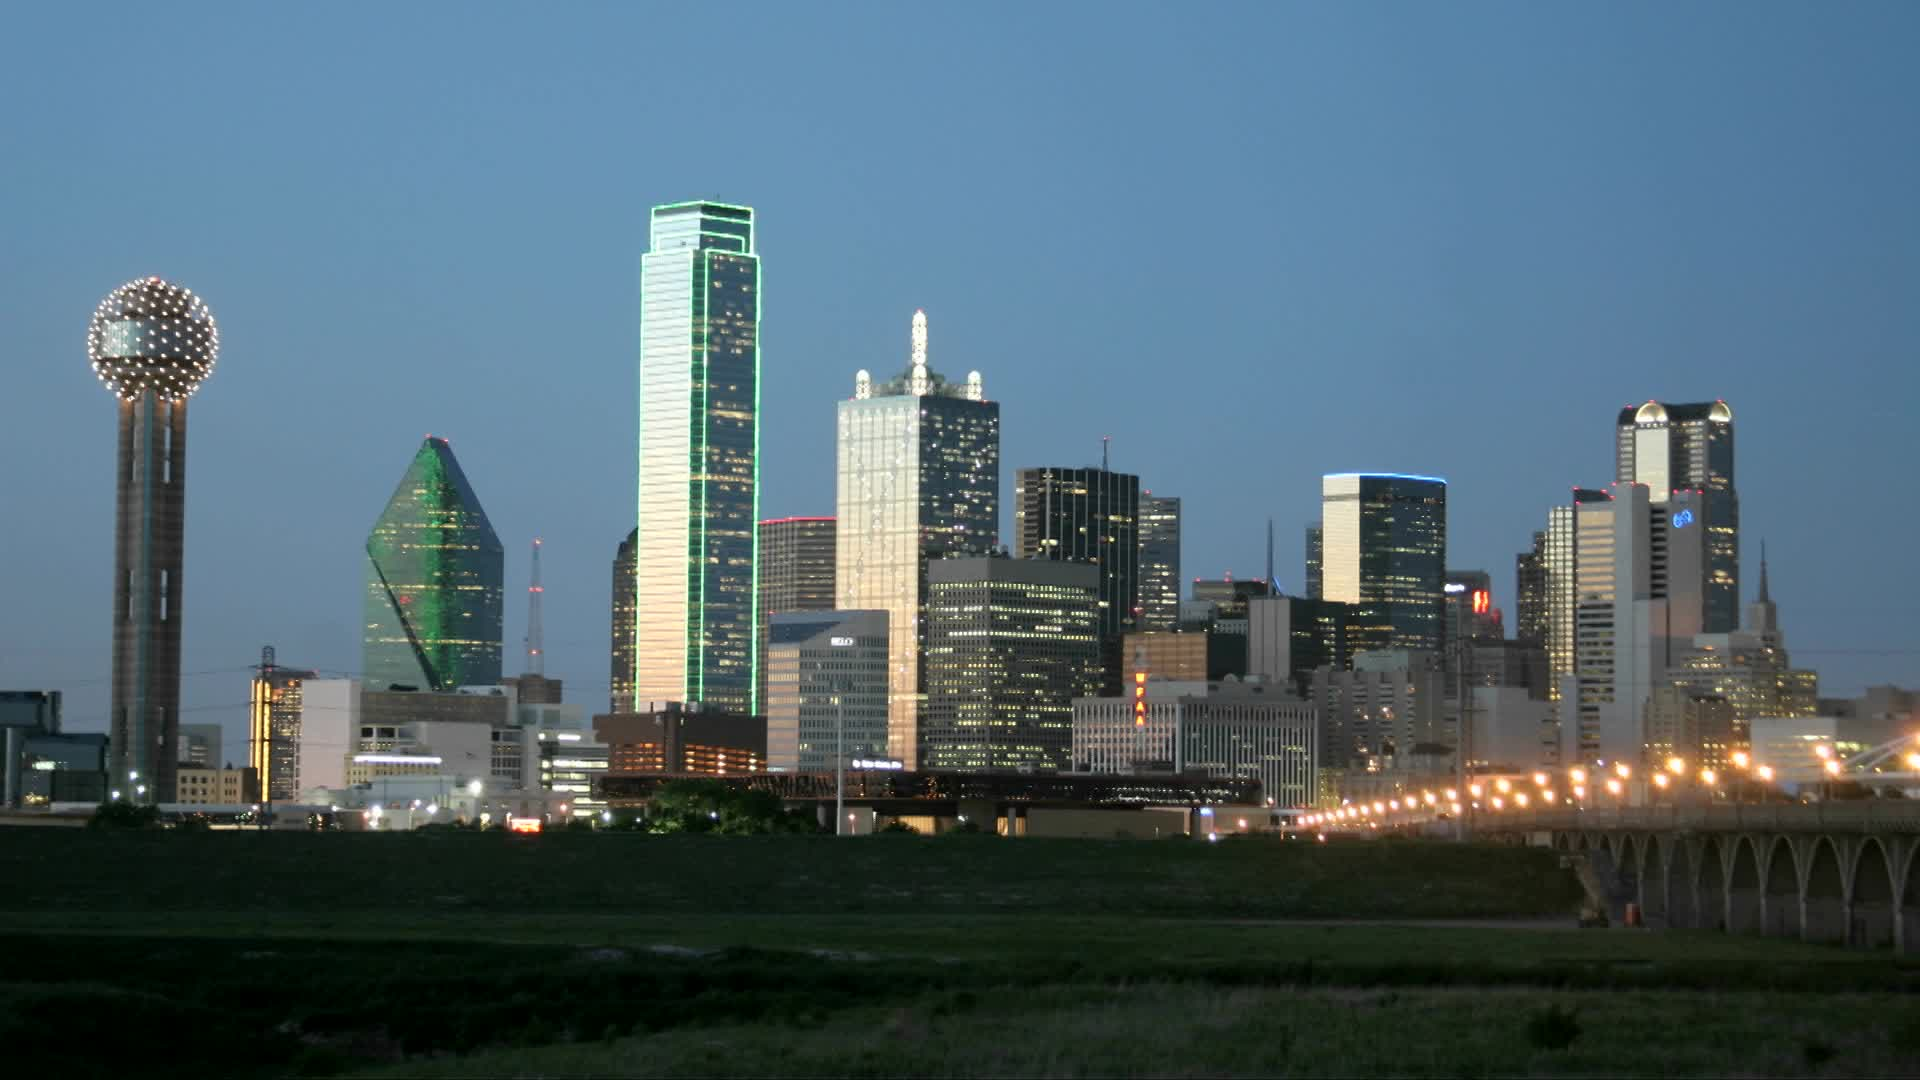 Dallas Full hd wallpapers